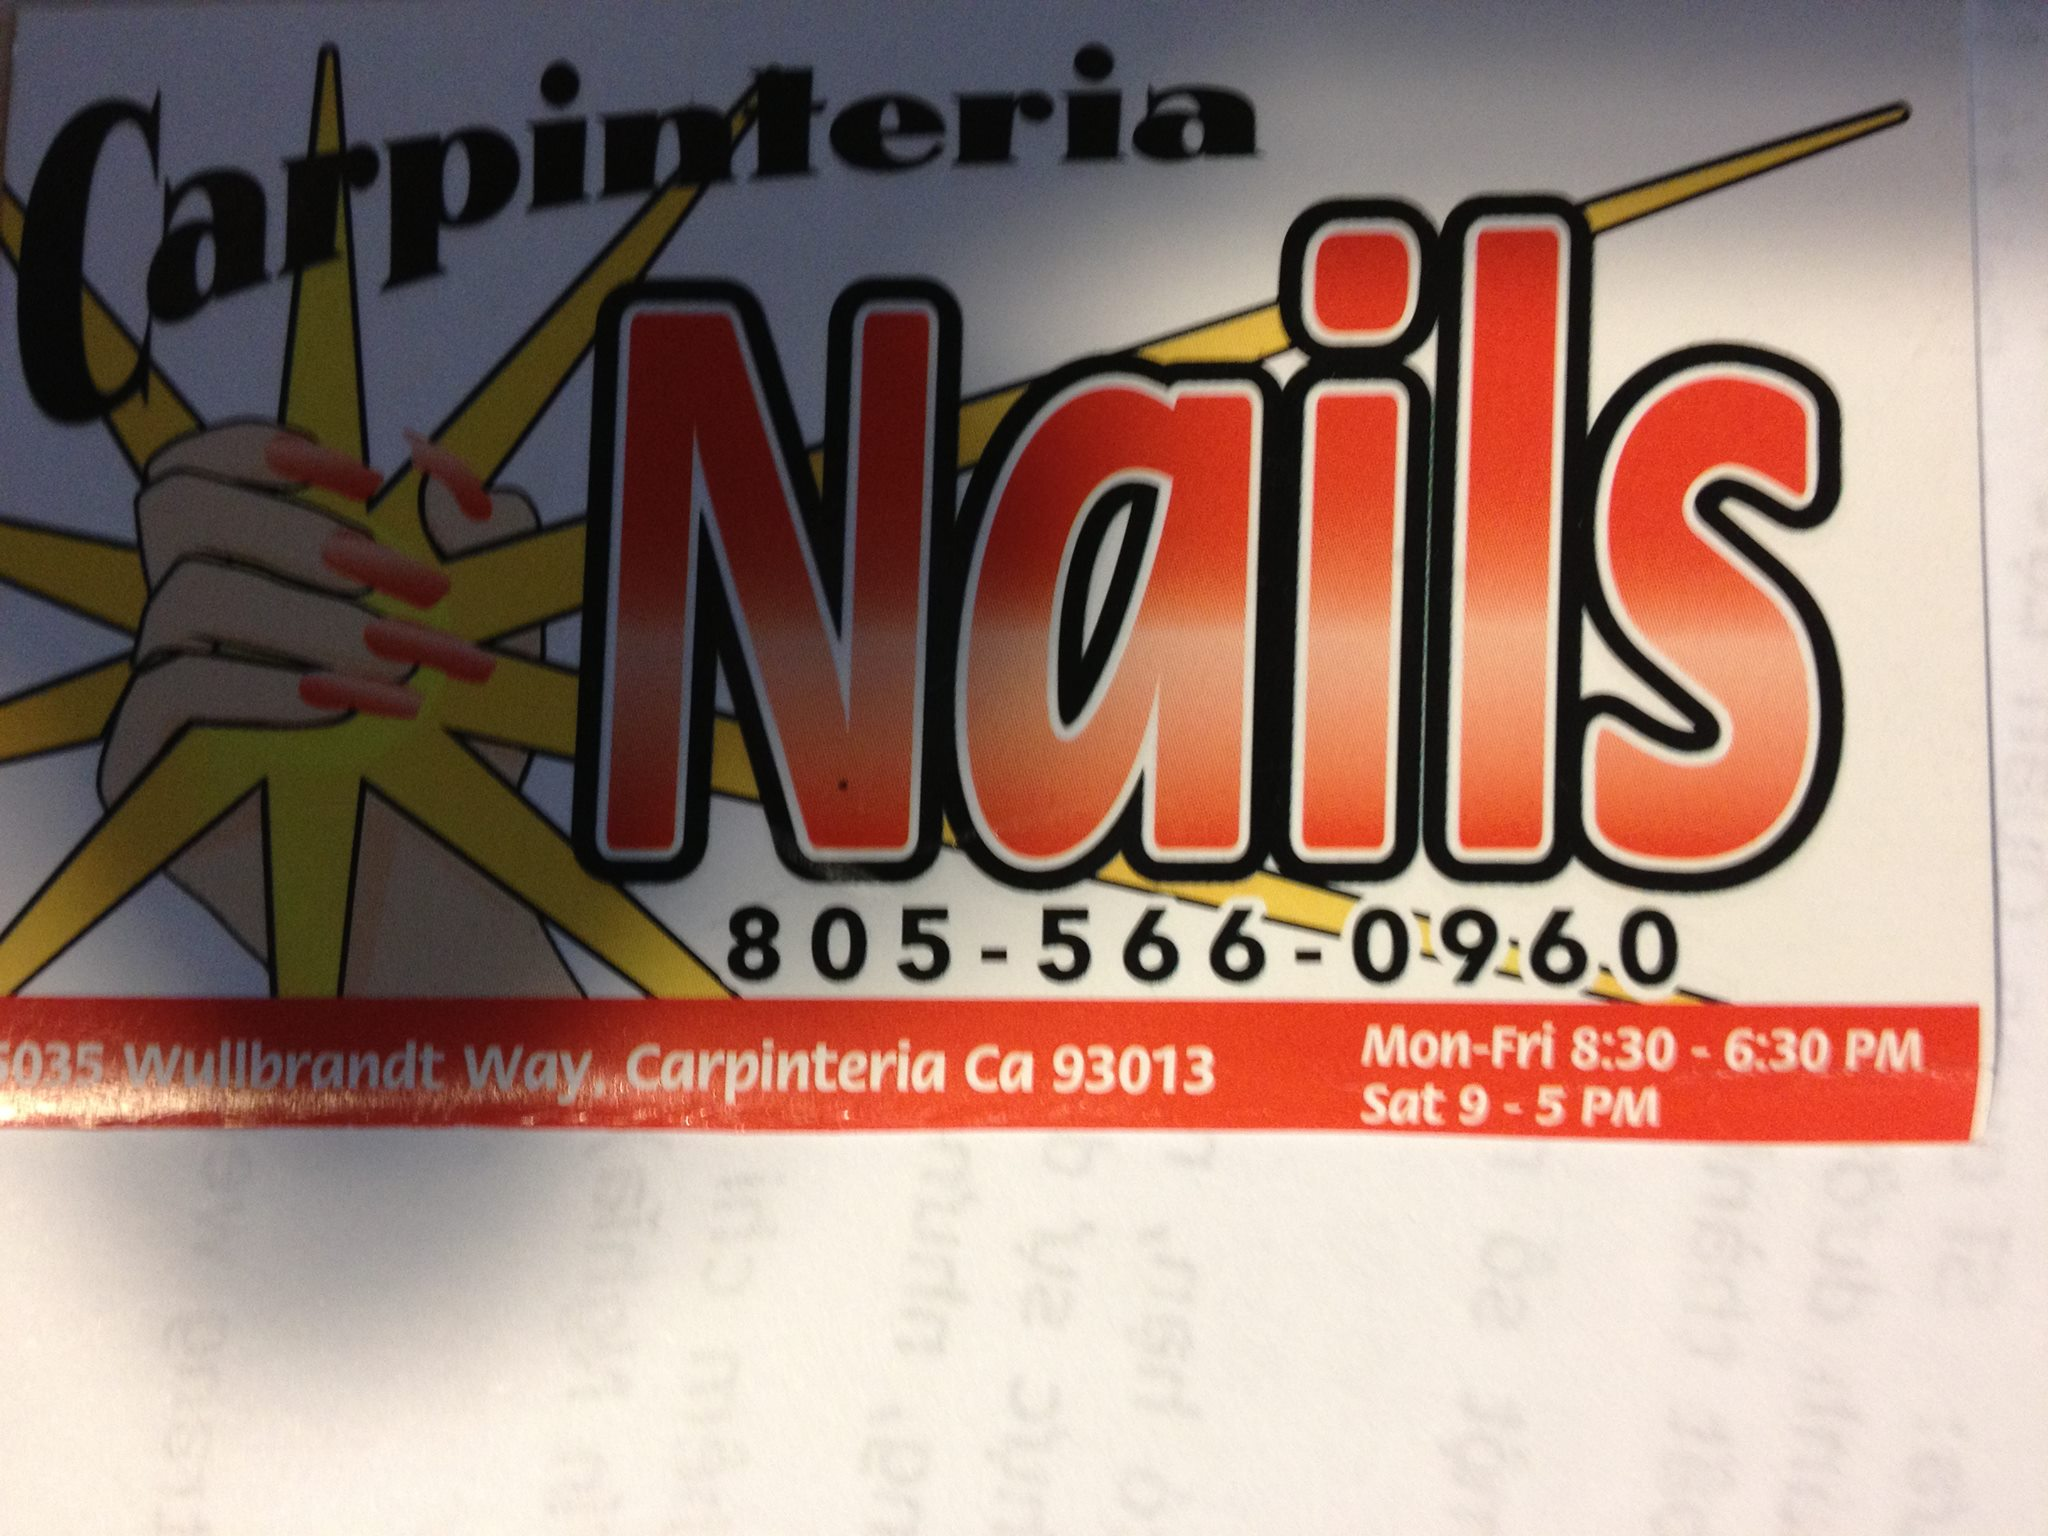 Carpinteria Nails logo